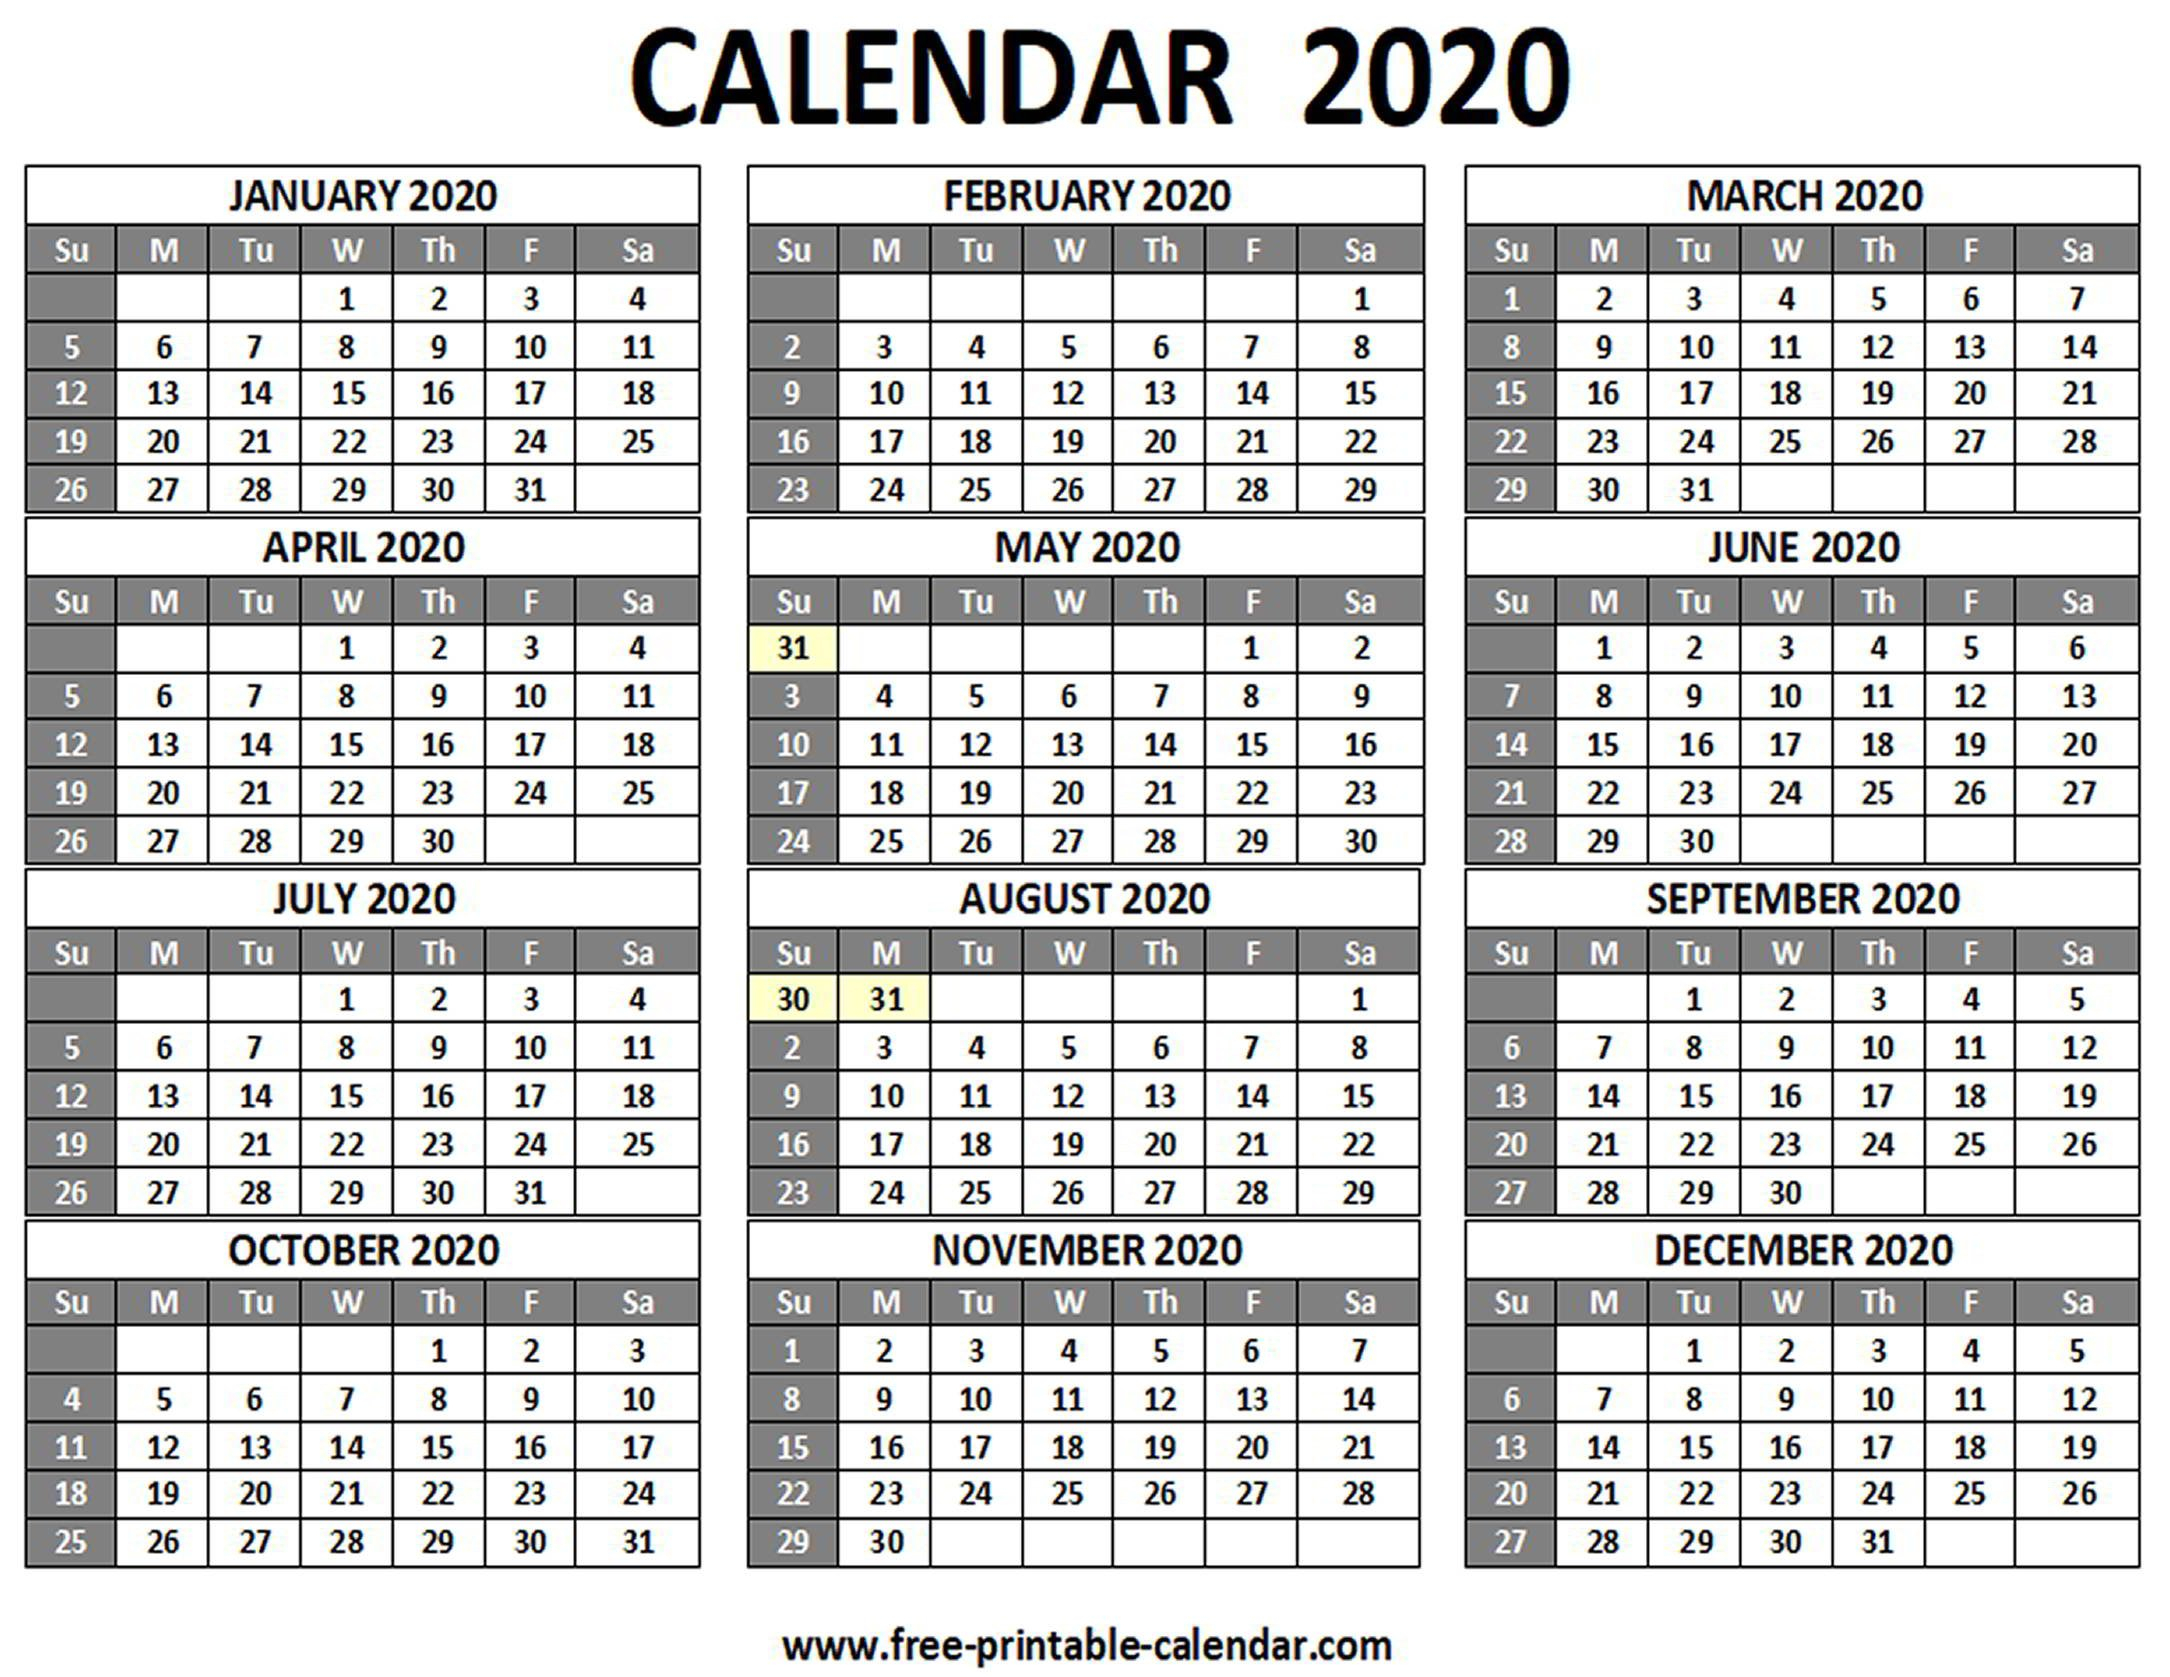 Catch 2020 Printable Calendar All Months   Calendar Free Weekly Calendar Fillable With Times Starting At 6Am